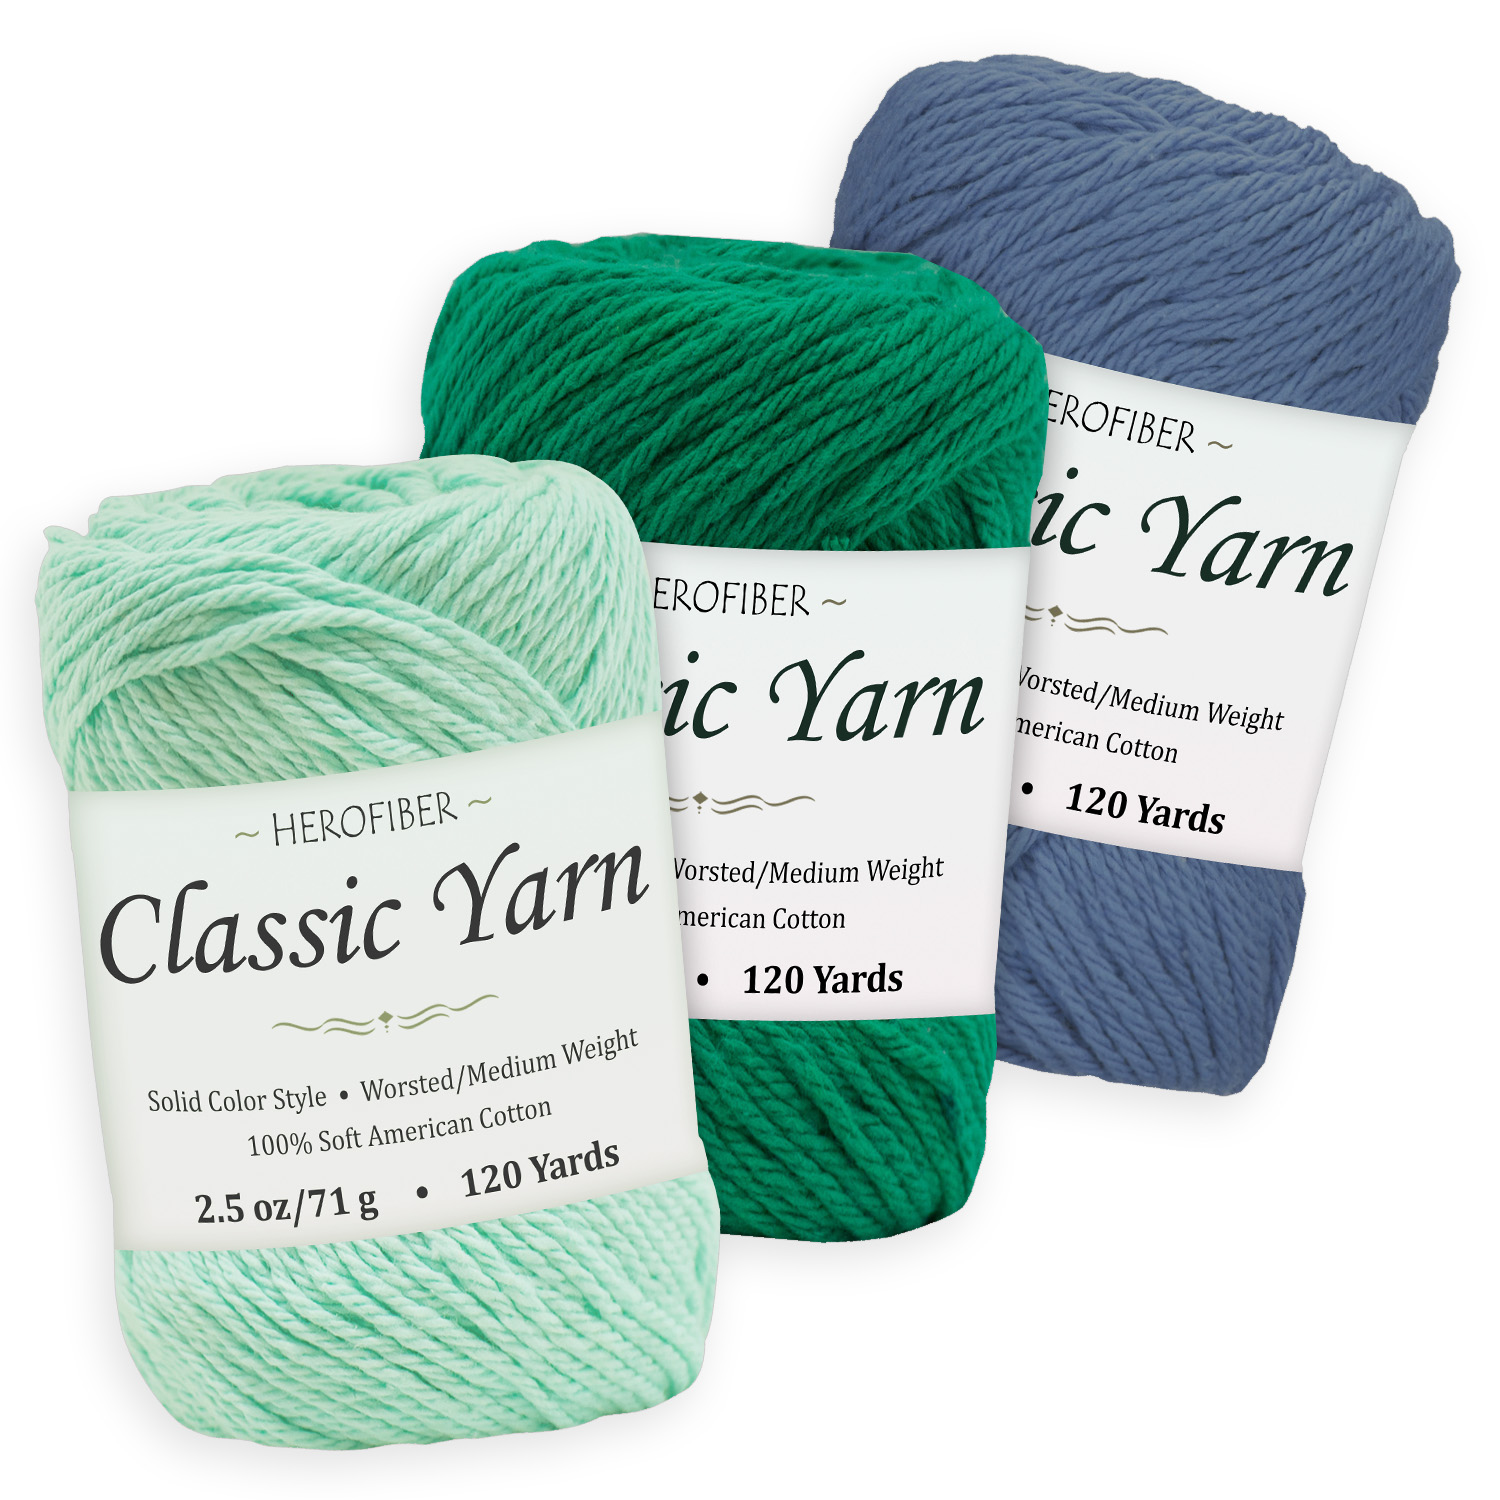 Eggshell Blue Assortment for | Coconut White WorstedMedium Weight Bordeaux Red Cotton Yarn 2.5 oz Each 3 Solid Colors